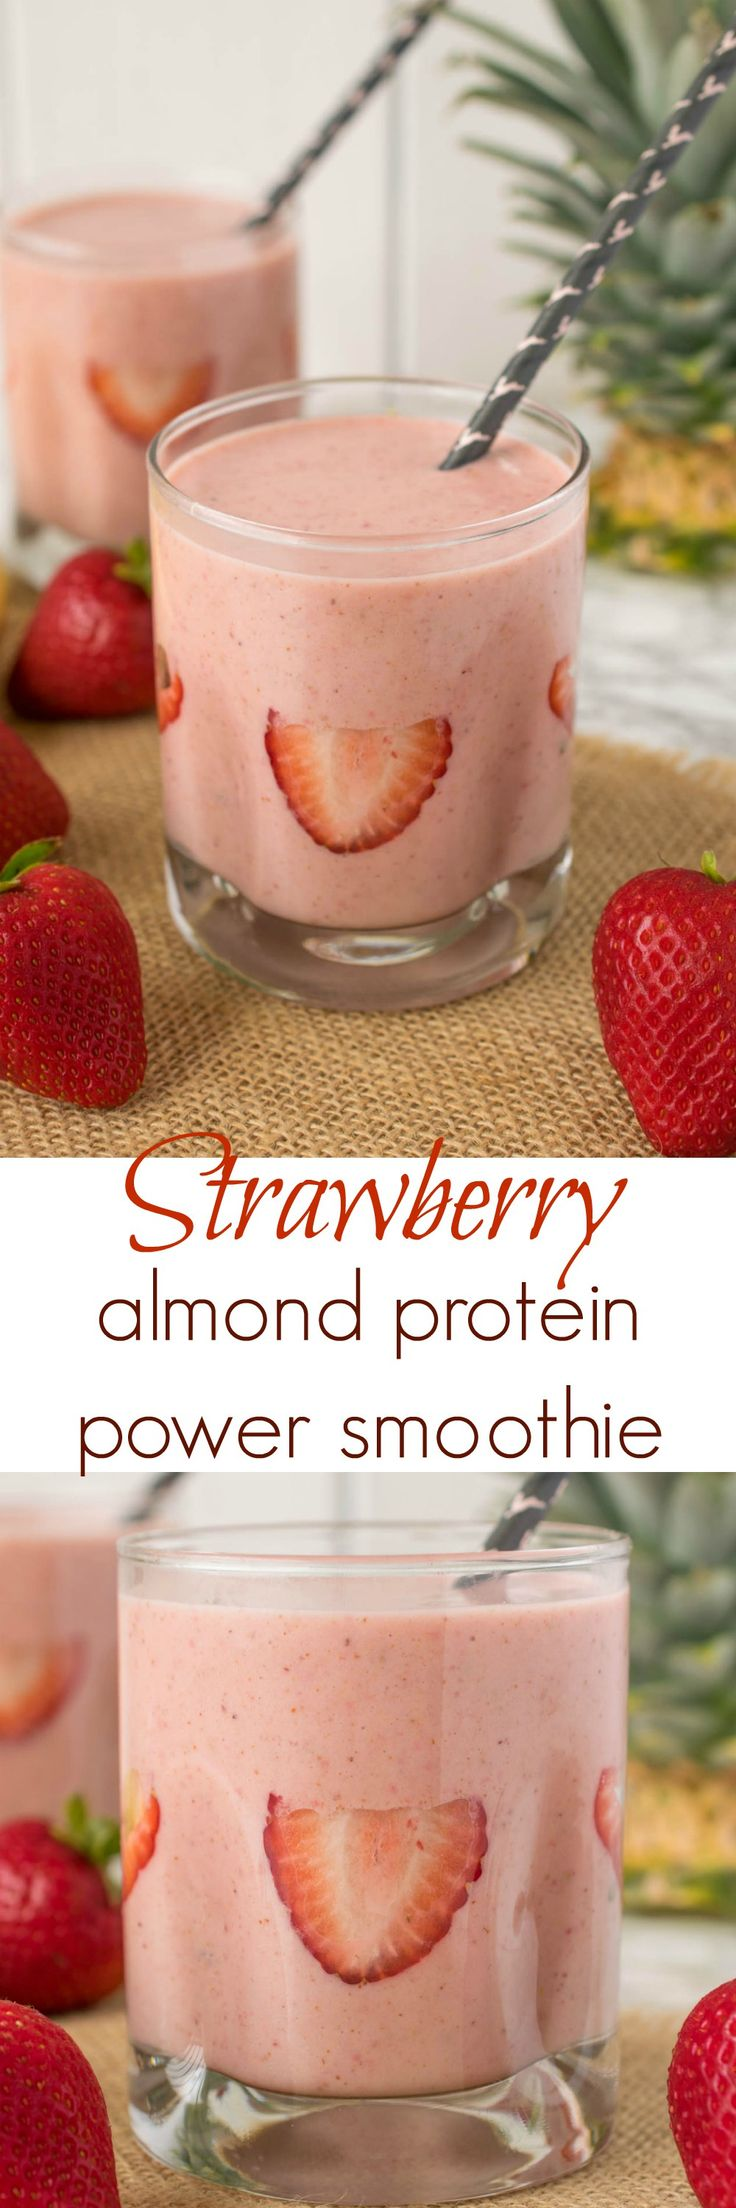 Strawberry, almond protein power smoothie. Fresh strawberries, almond butter…